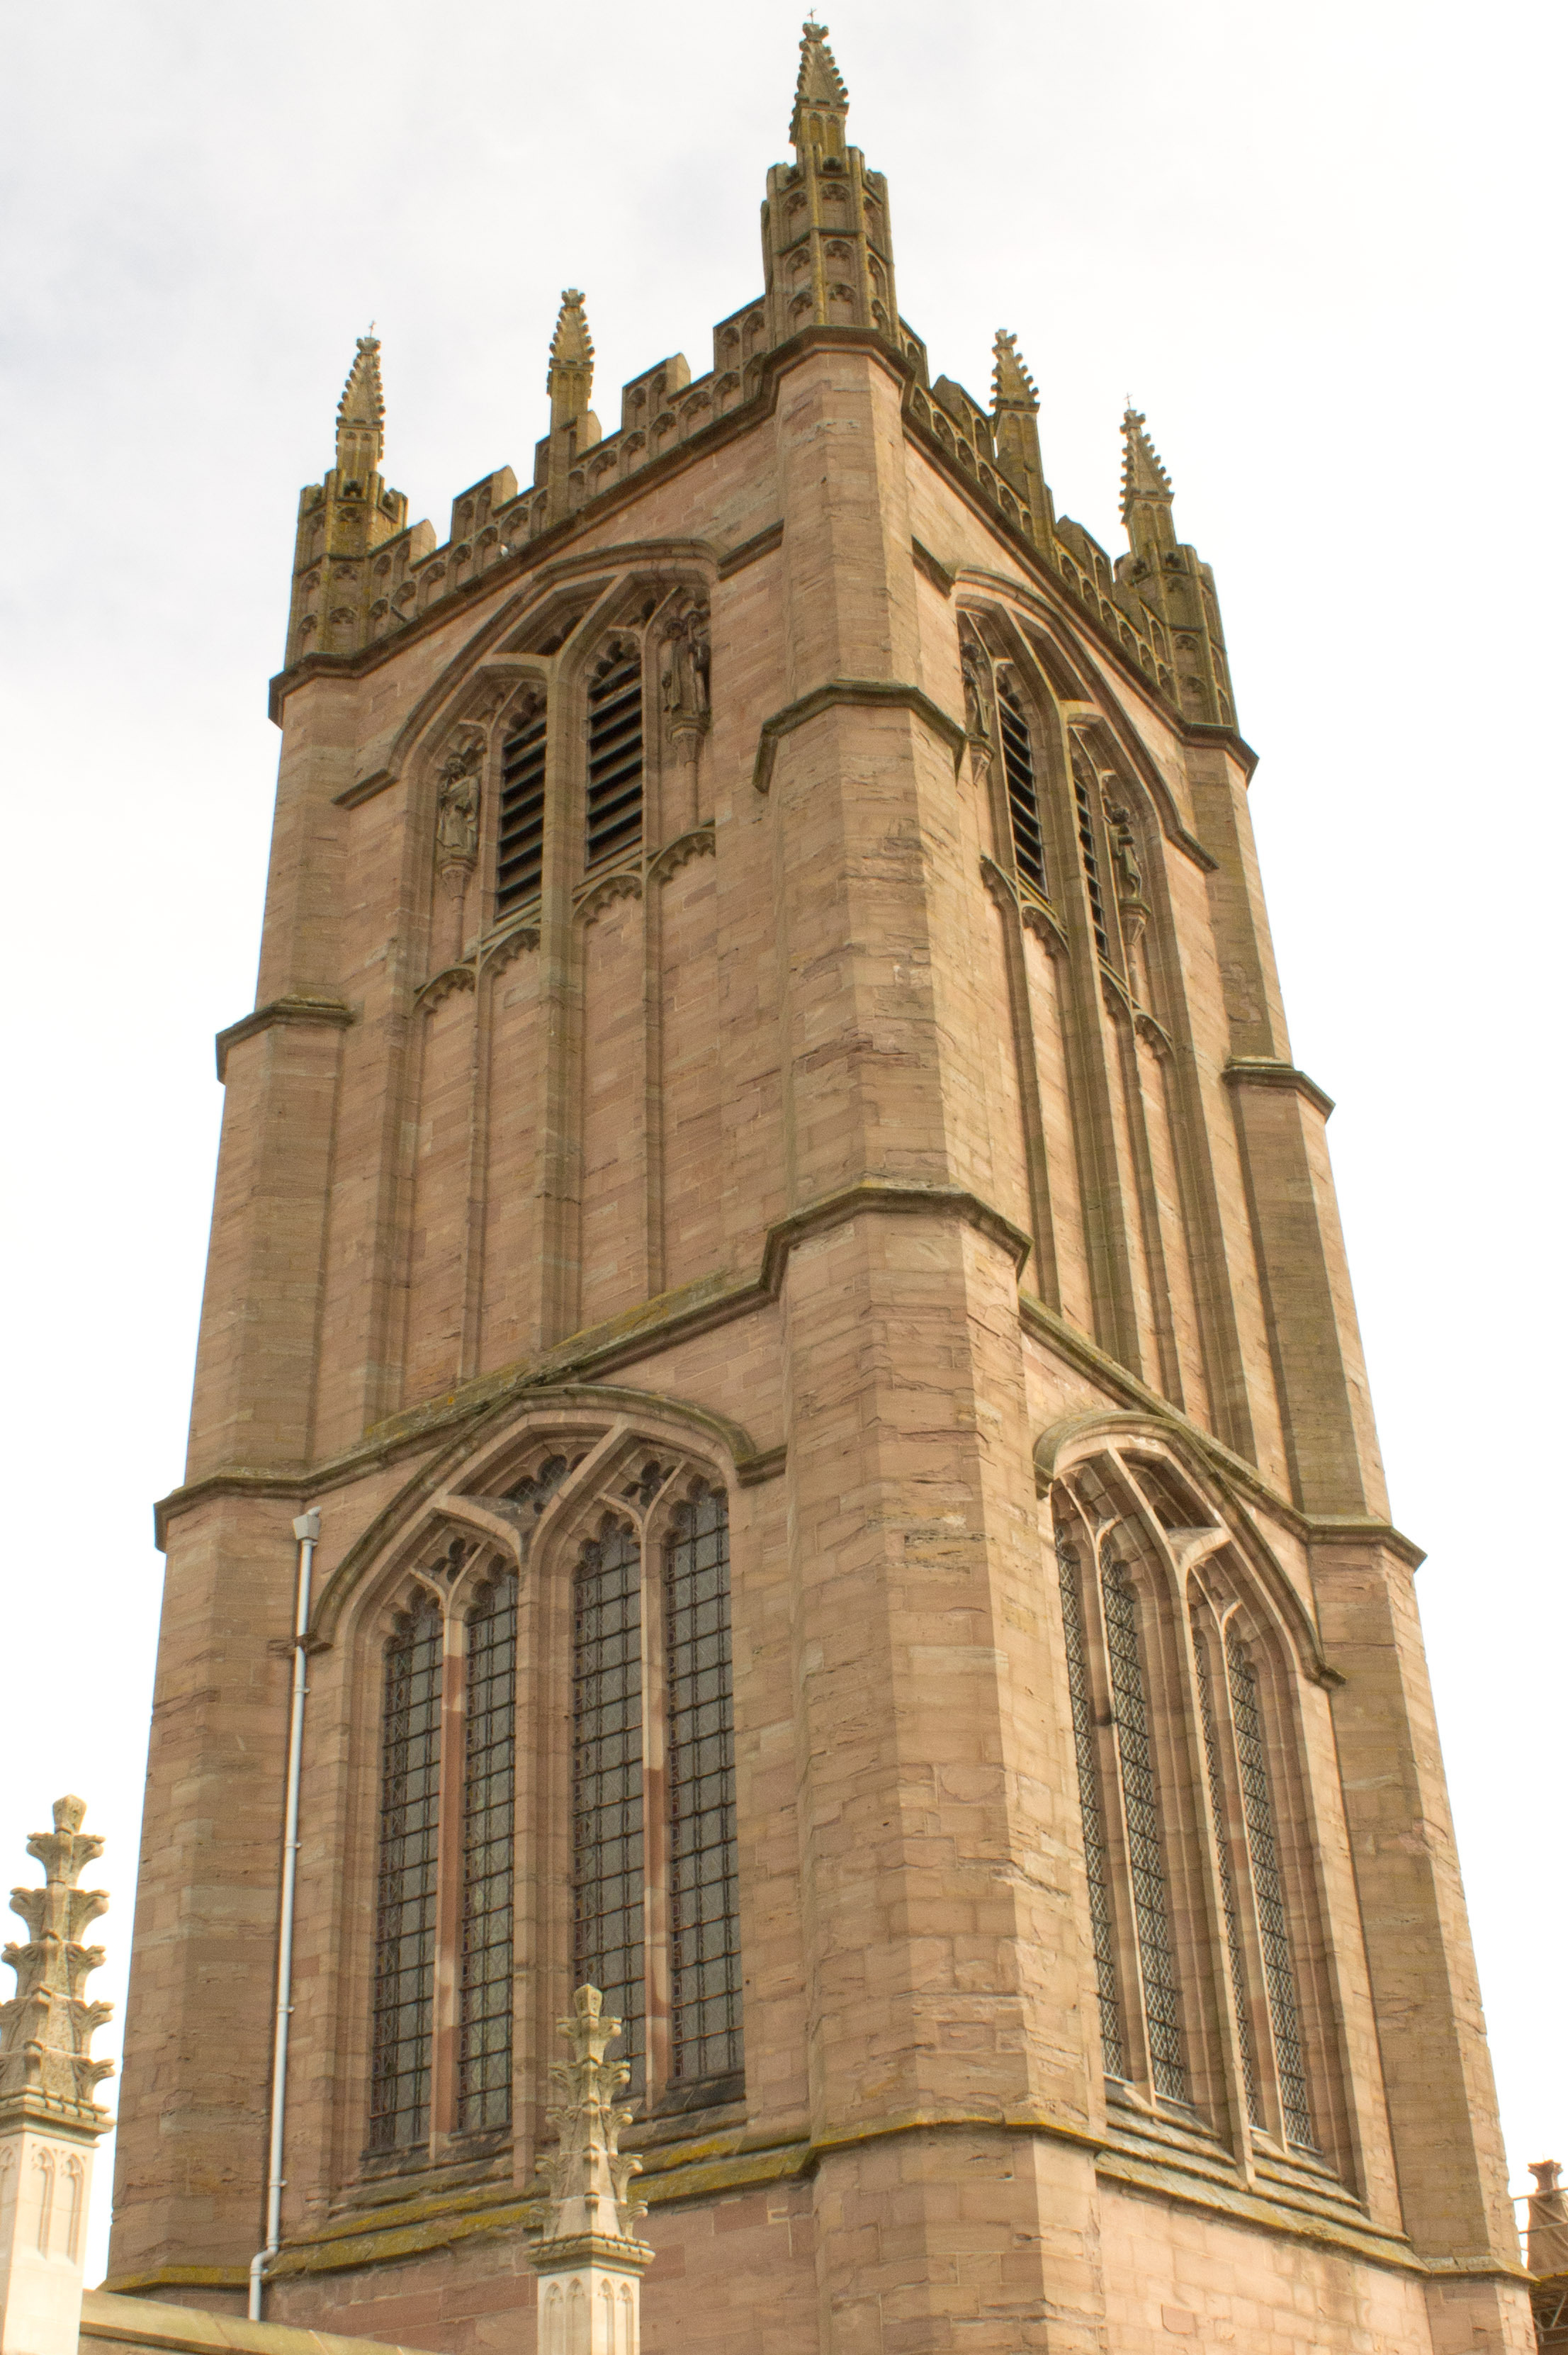 Hereford Diocese, which includes Ludlow, will host a second Festival of Churches later this